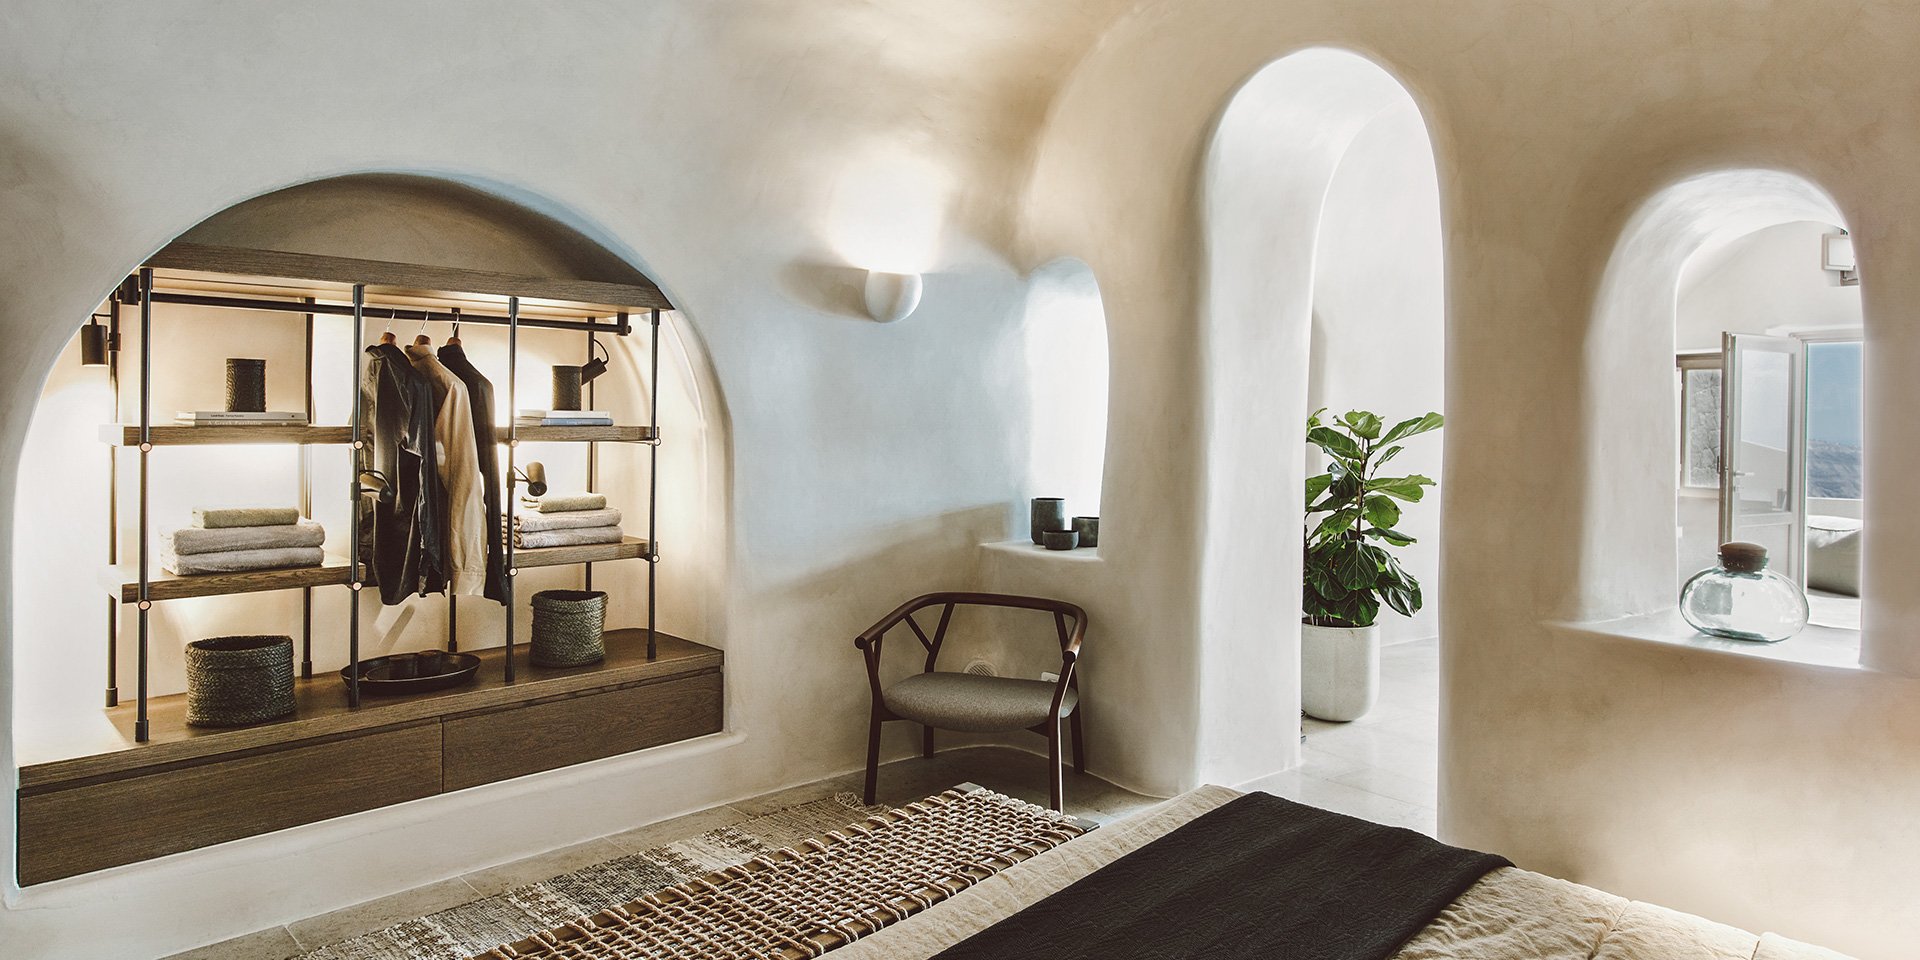 Vora-Santorini-Greece-Europe-rooms.jpg